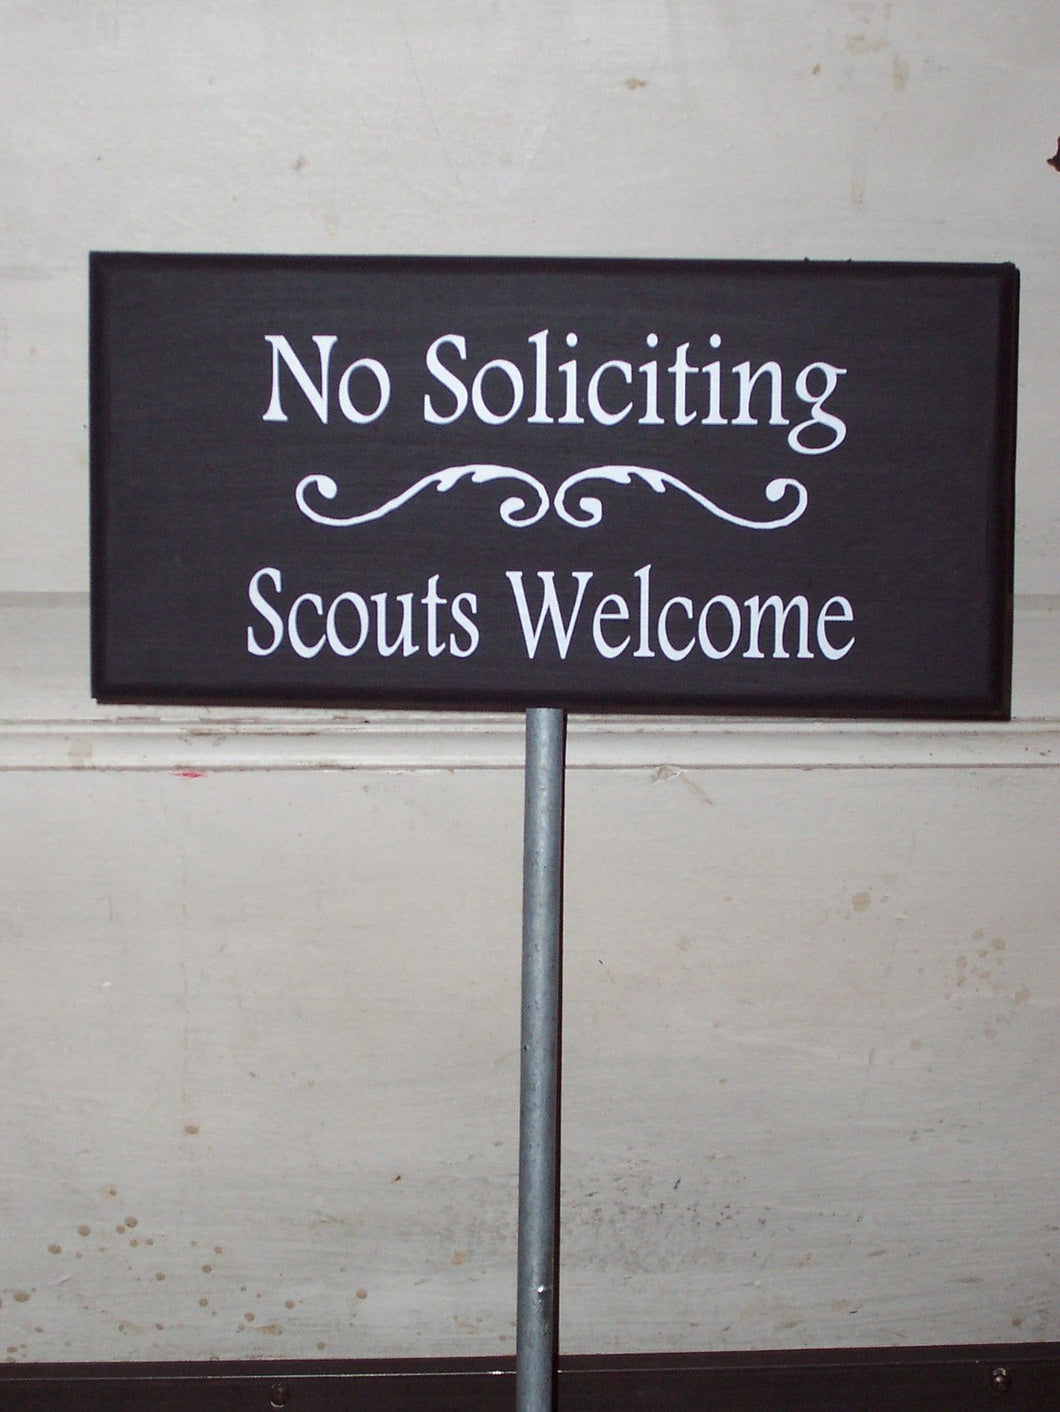 No Soliciting Scouts Welcome Wood Signs Vinyl Yard Stake Sign Outdoor Yard Art Housewarming Gift Personalized Home Decor Lawn Ornament Porch